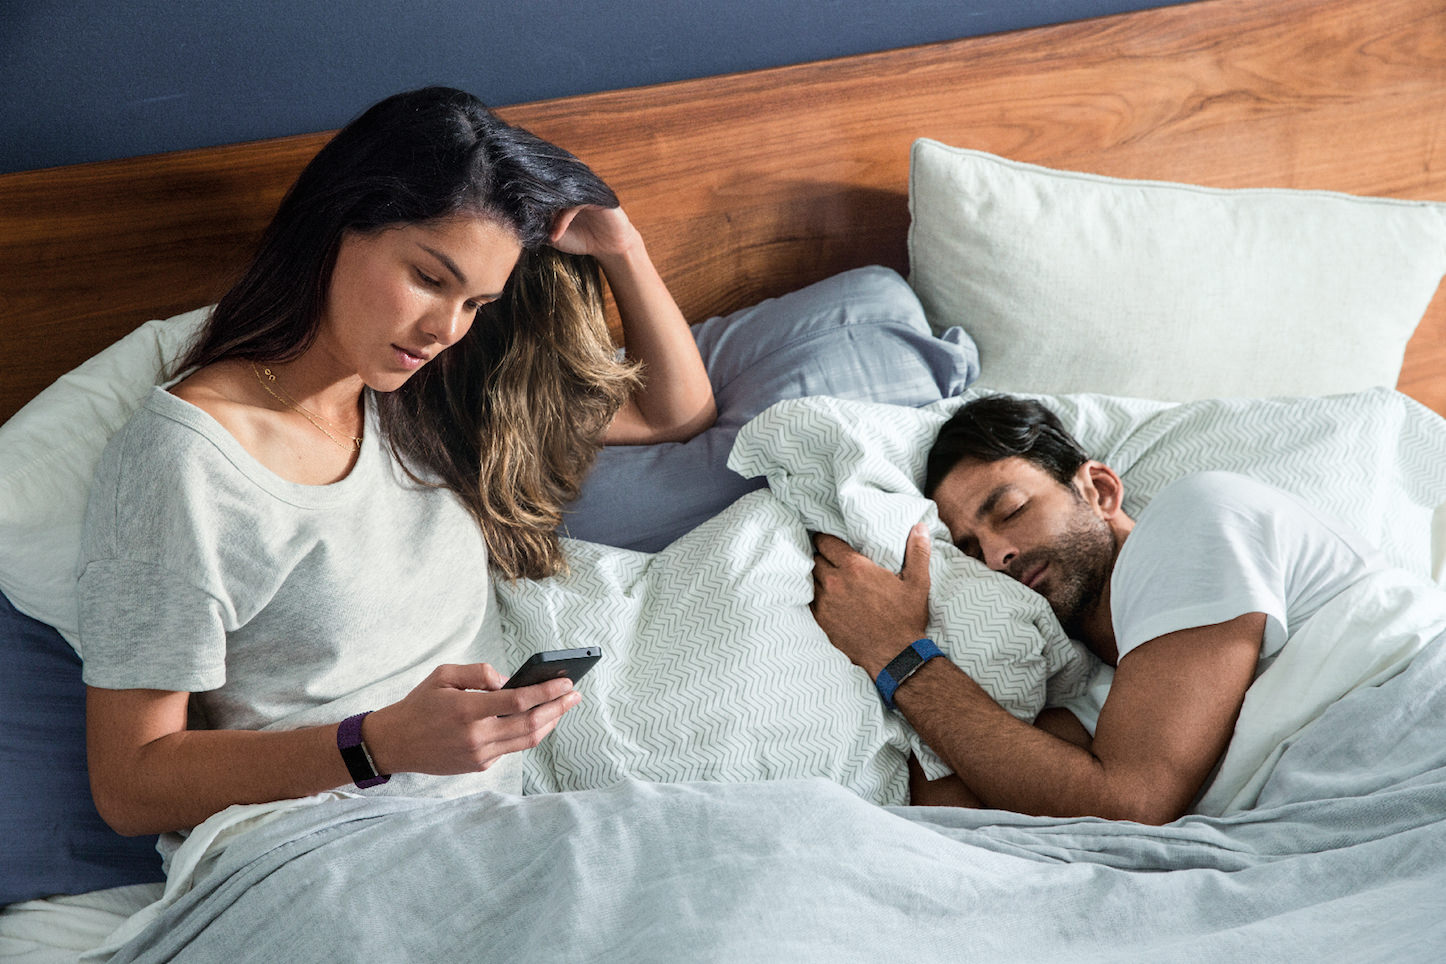 Fitbit Charge 2 Couple Waking Up Lifestyle